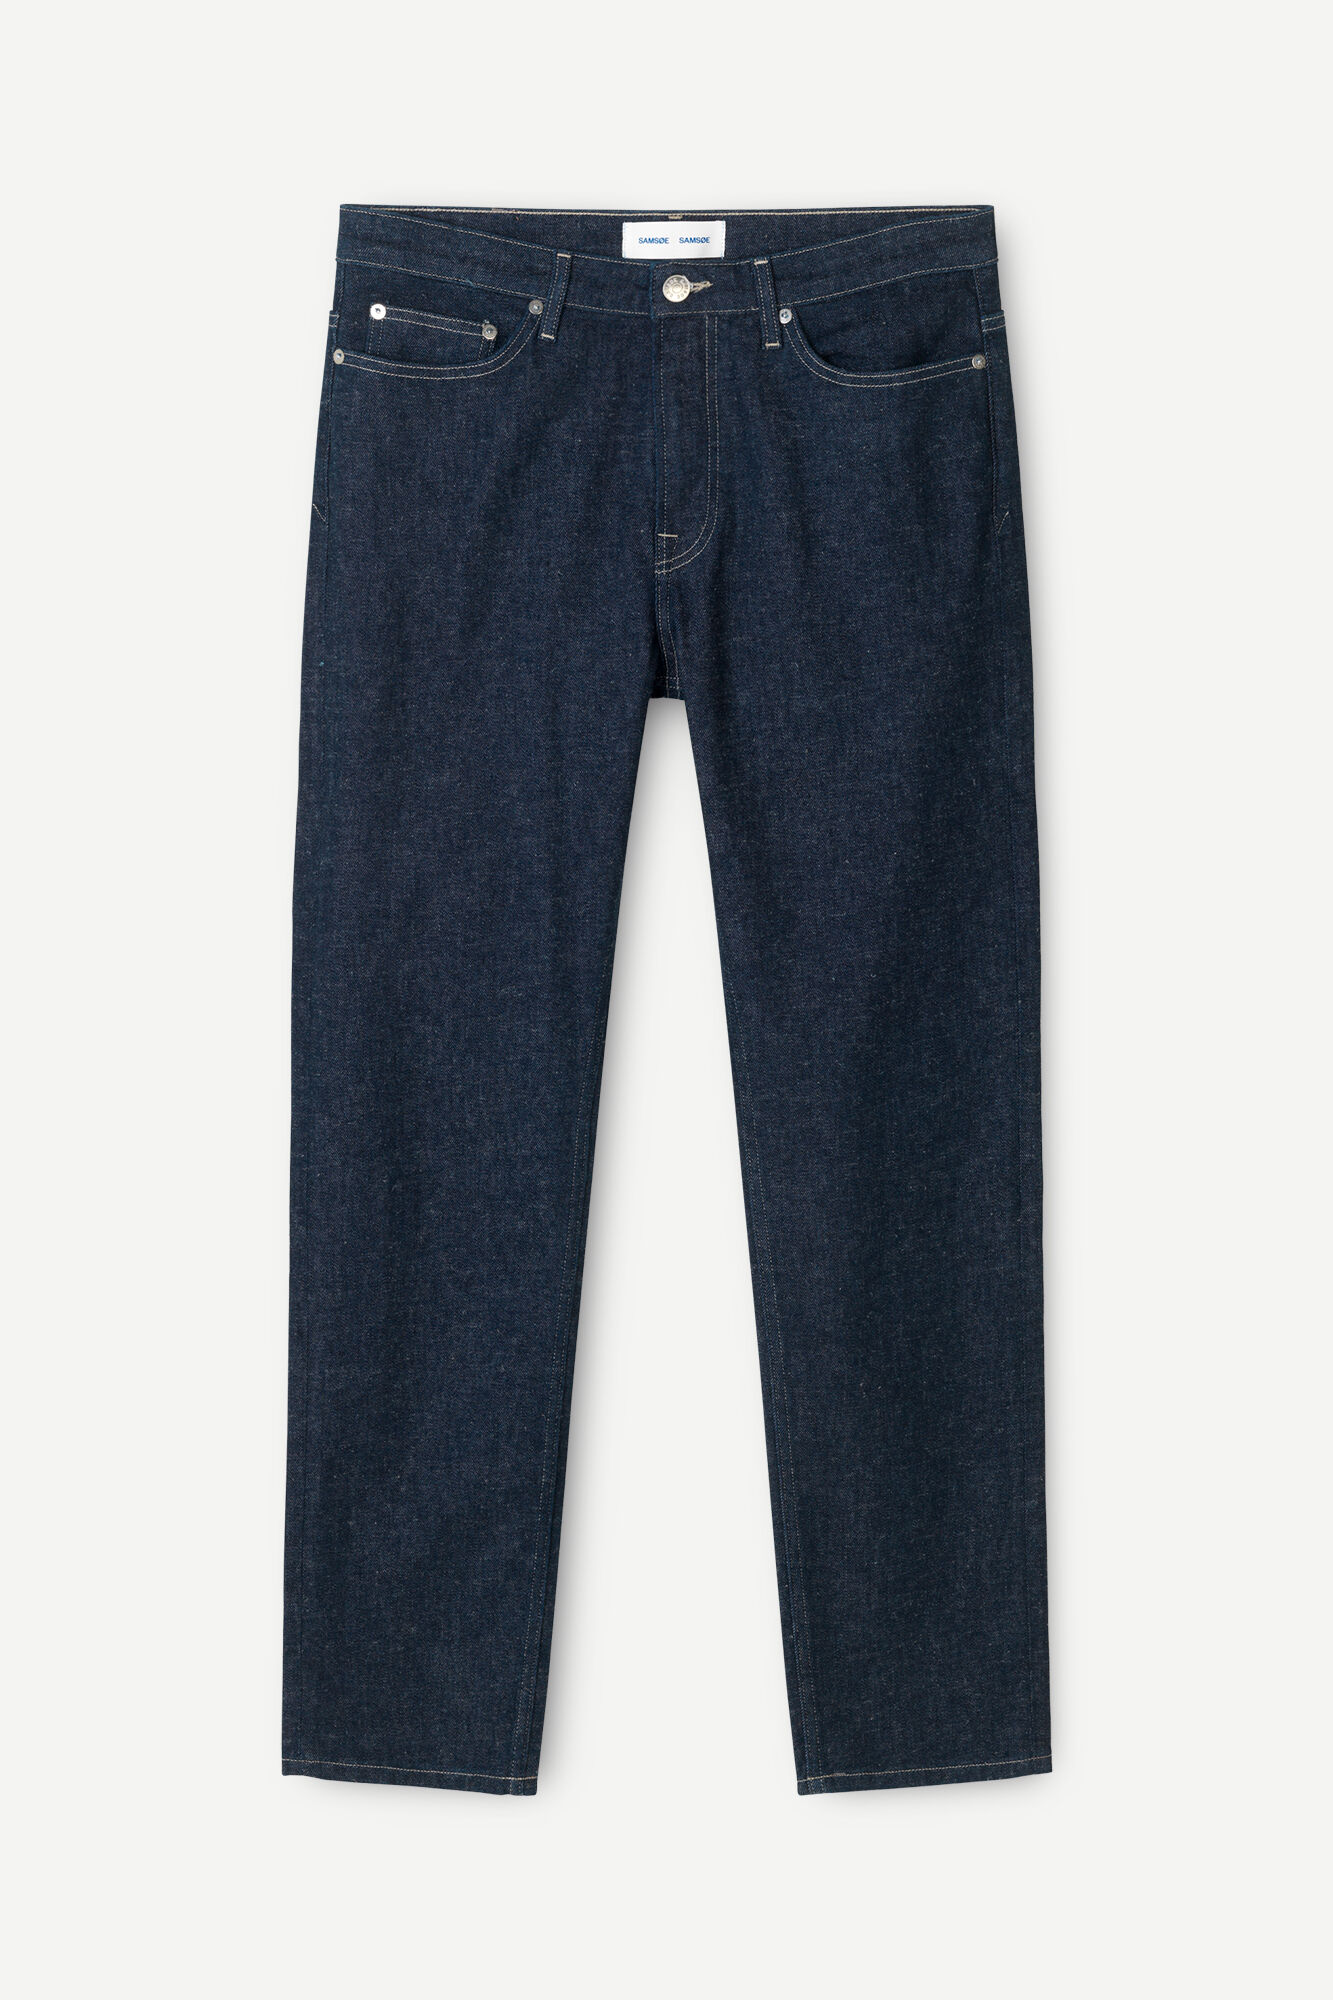 Rory jeans 14031